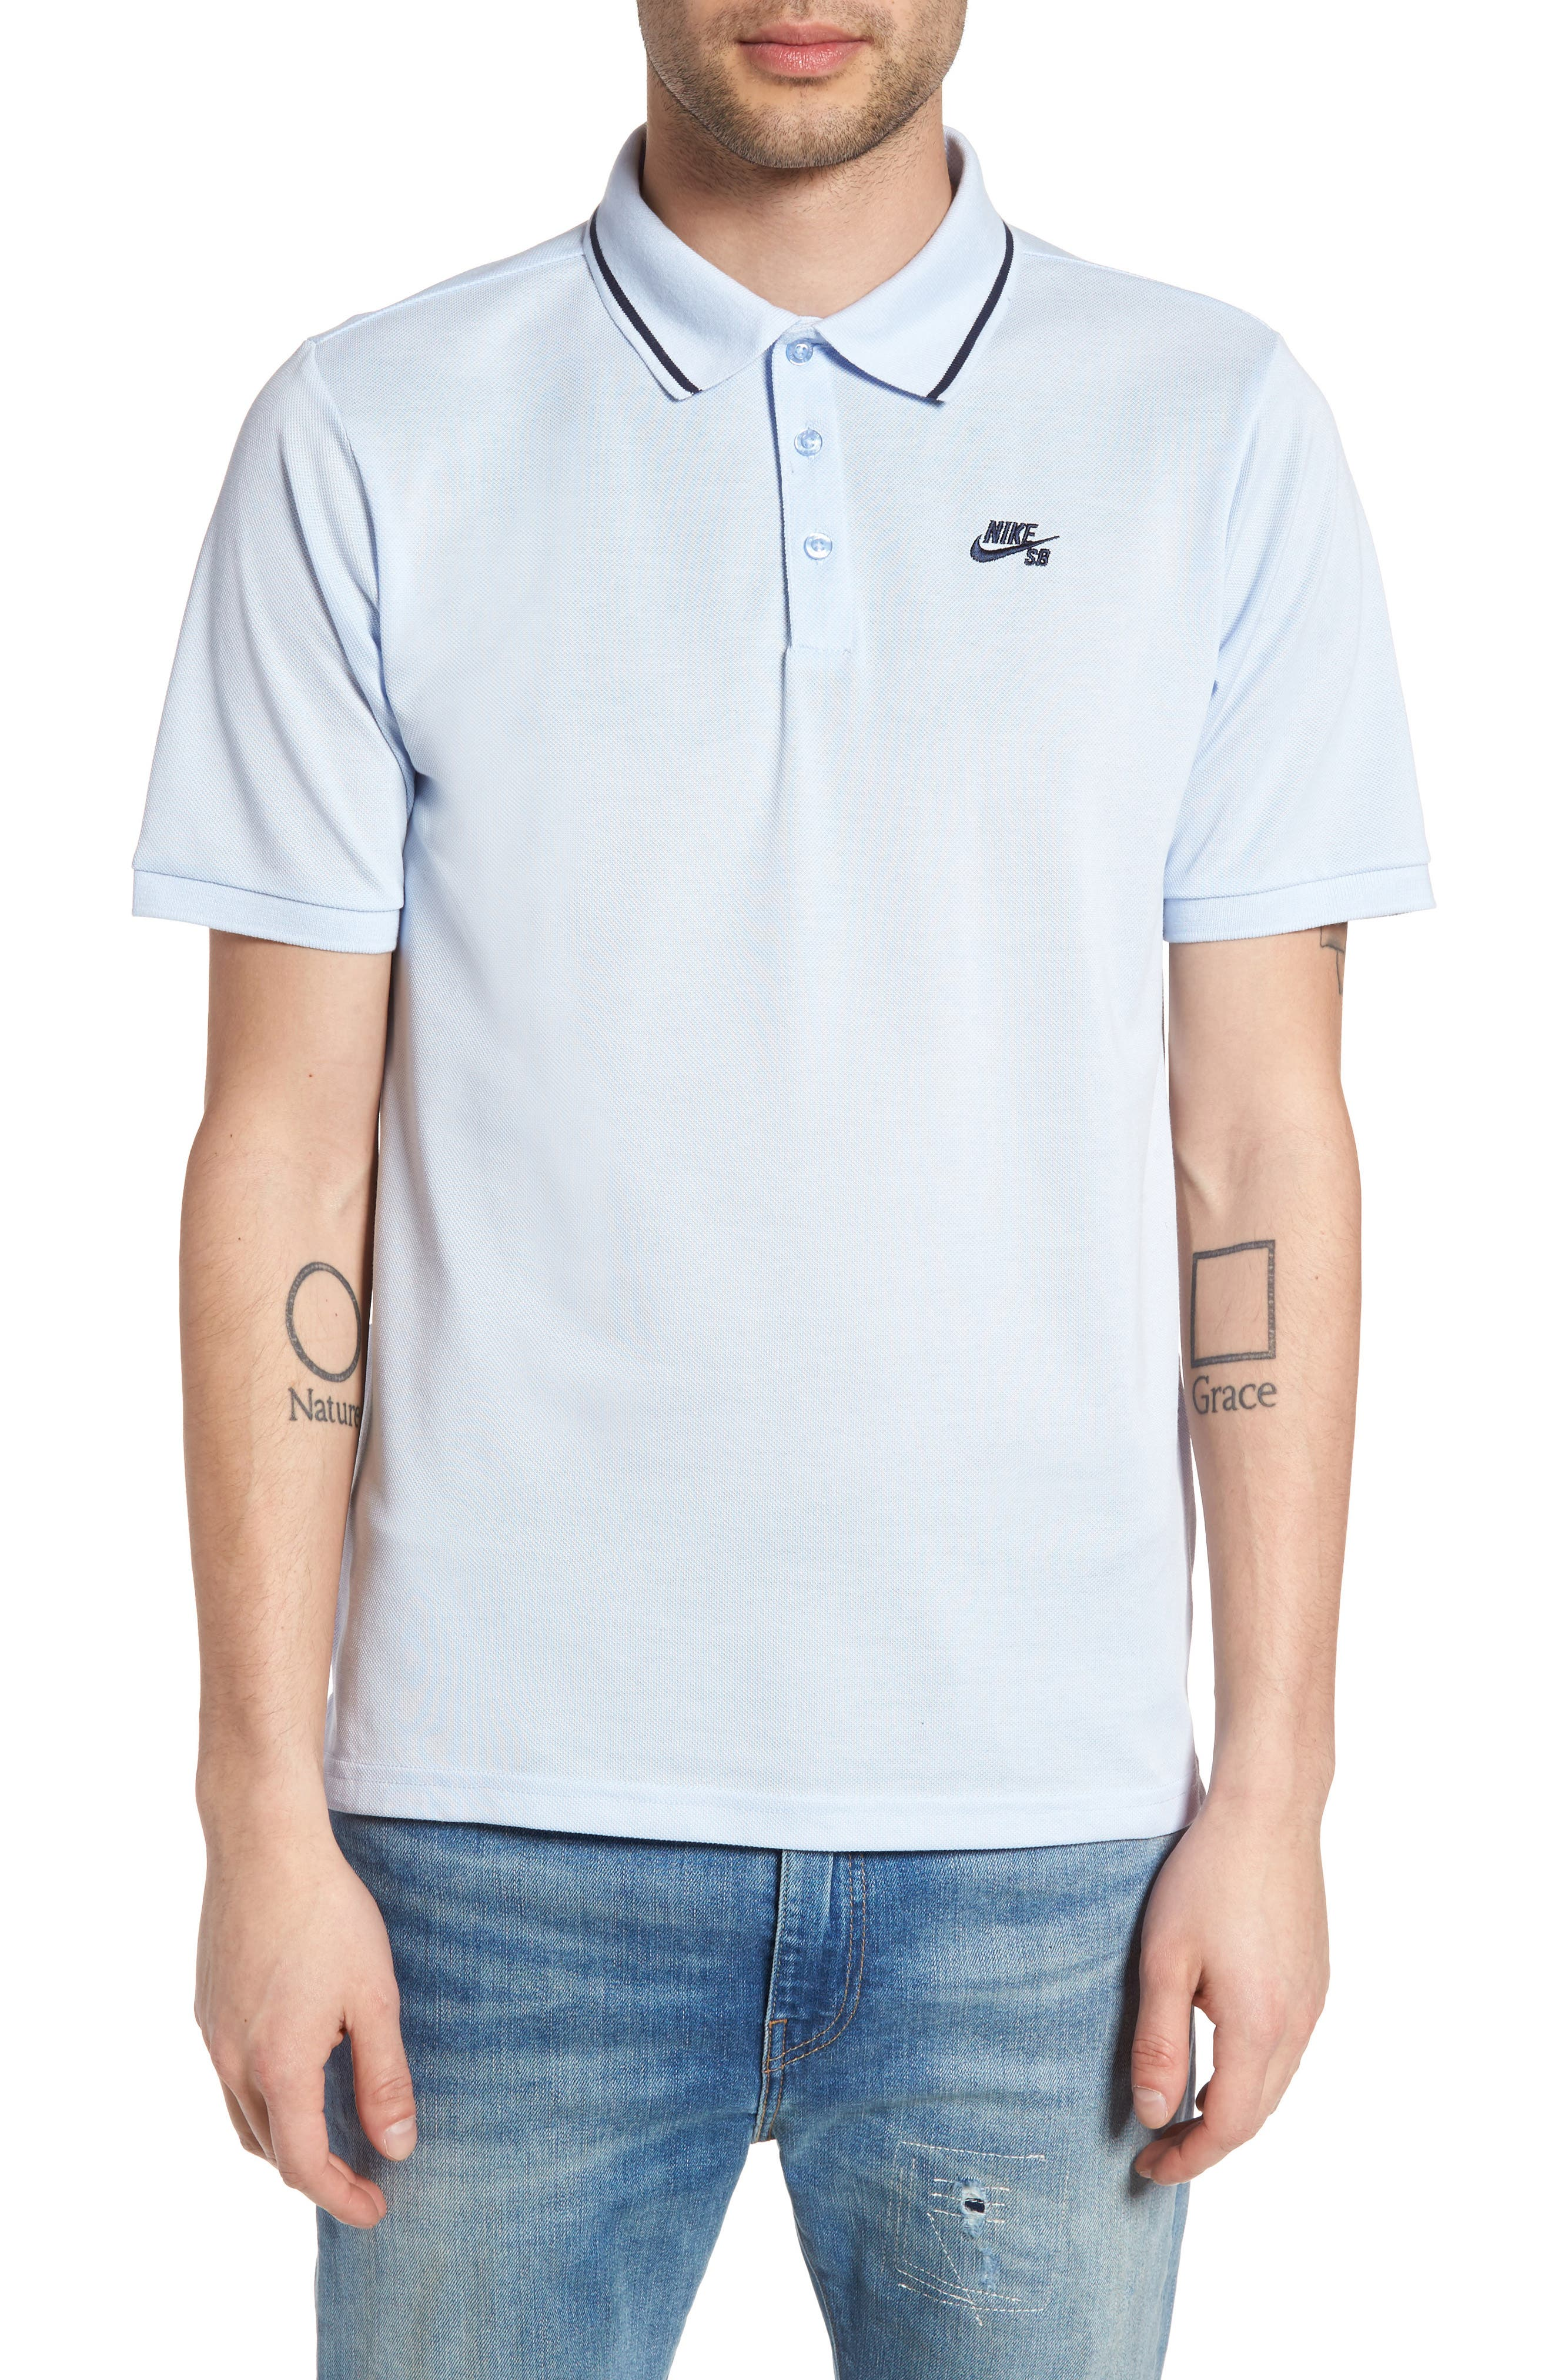 Main Image - Nike SB Dri-FIT Piqué Polo